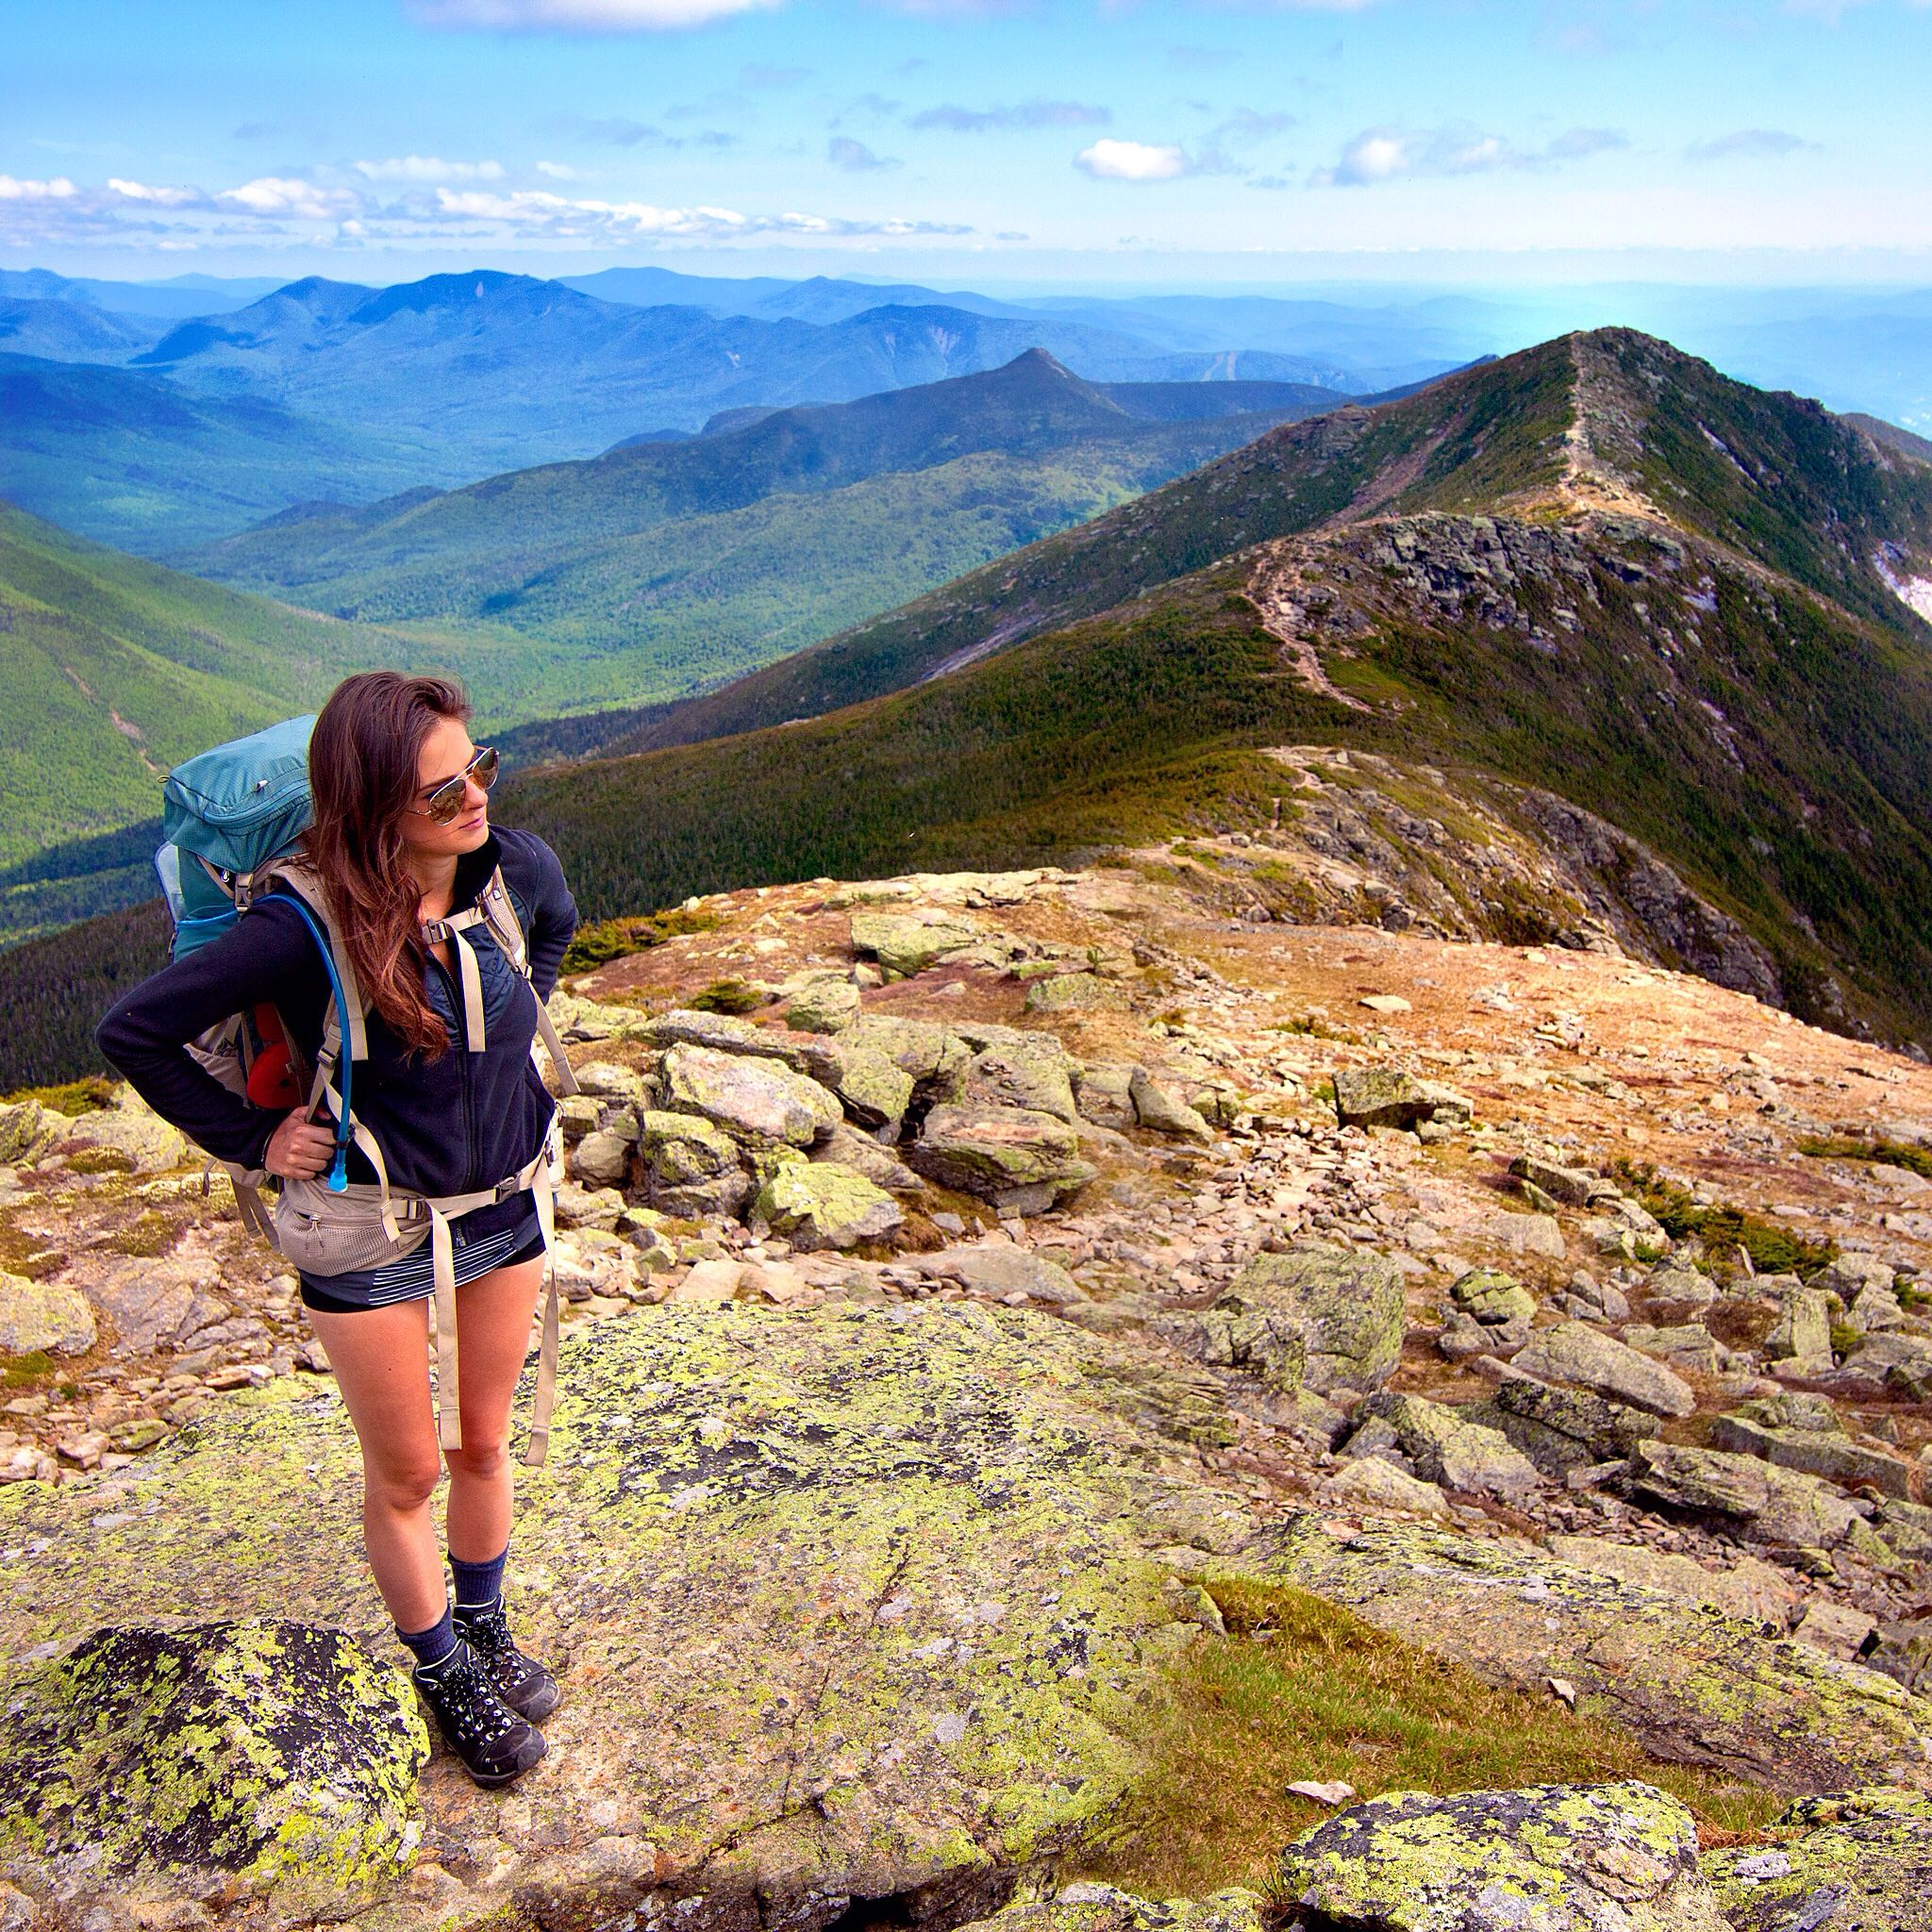 A picture of a female hiker on top of a scenic vantage point overlooking an endless view of mountains.